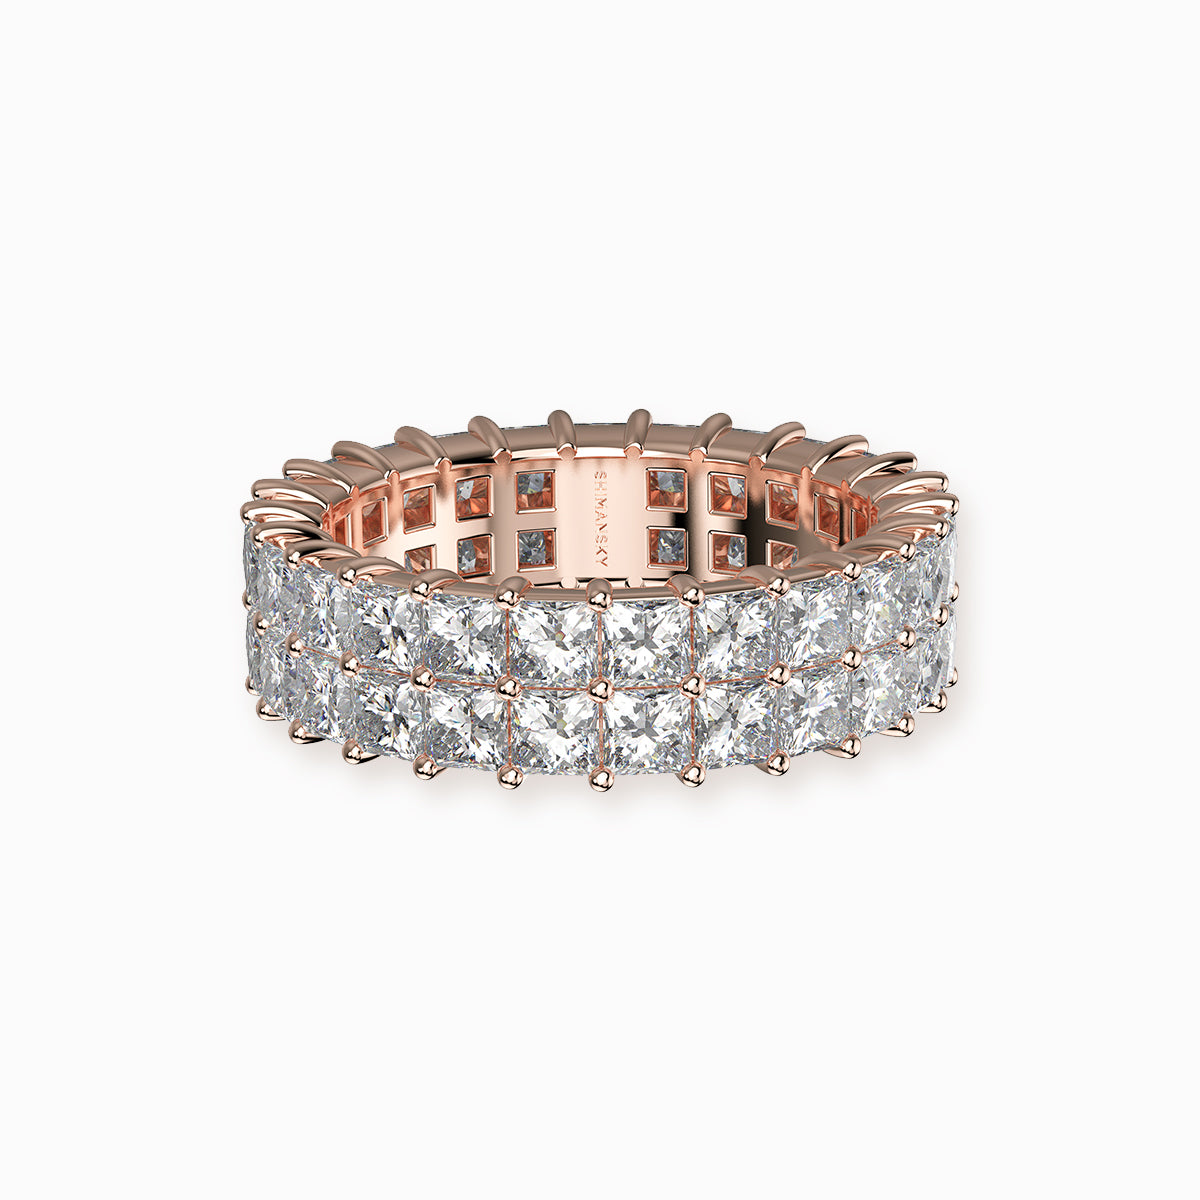 Shimansky my girl double row full eternity ring 18k pink gold